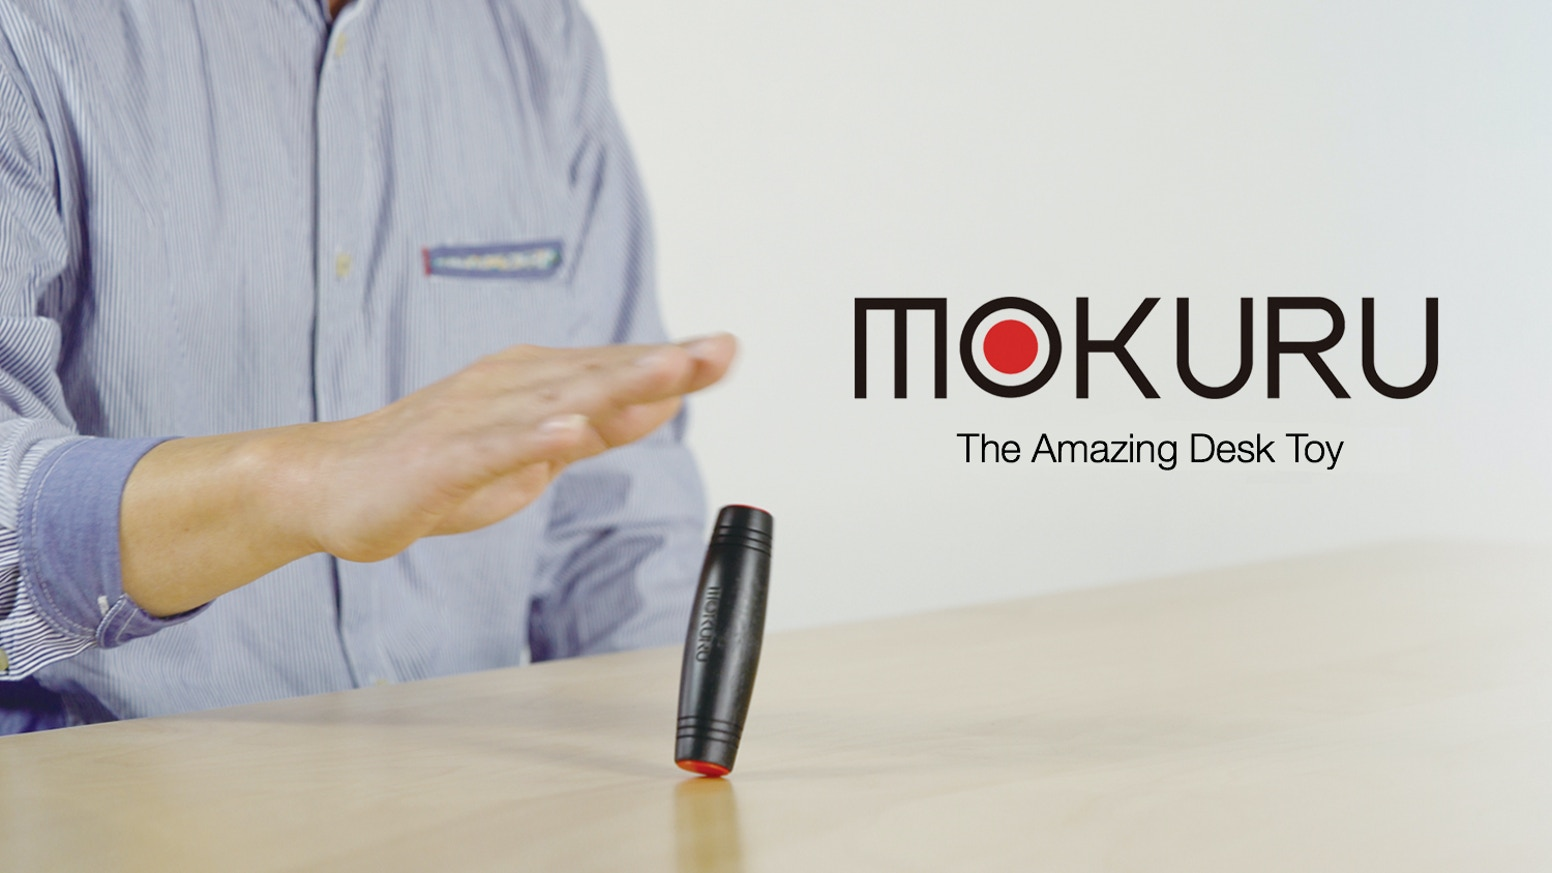 MOKURU is the unique & inventive desk toy that's easy to flip, roll and do tricks with, giving you endless possibilities of fun!